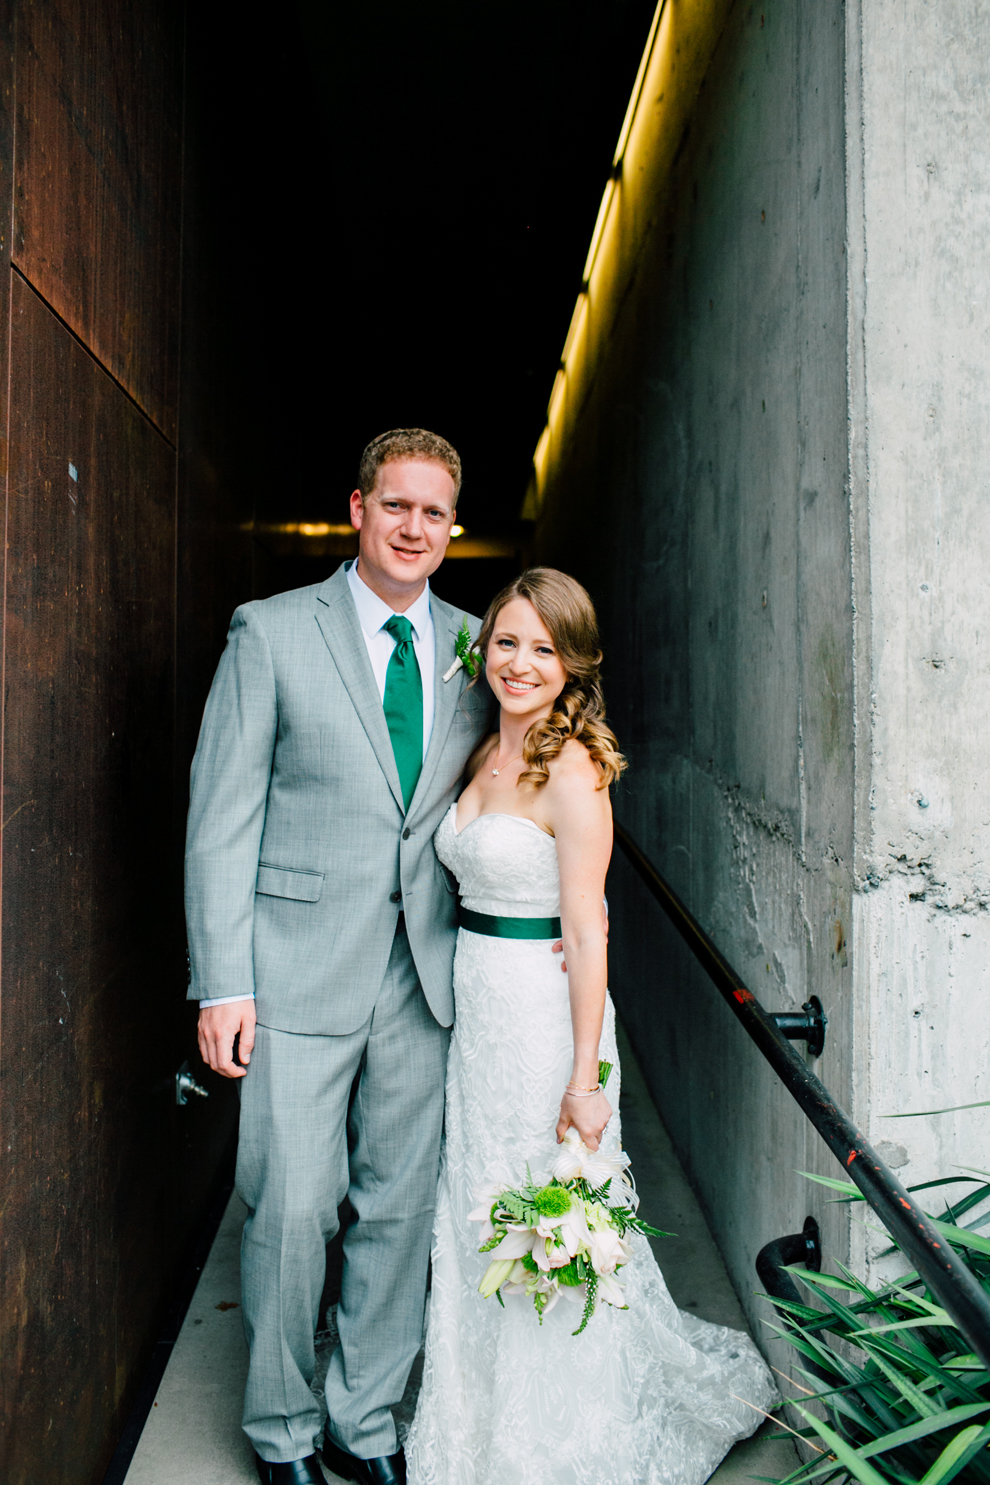 033-fremont-foundry-seattle-wedding-katheryn-moran-photography-anthony-kaitlin.jpg